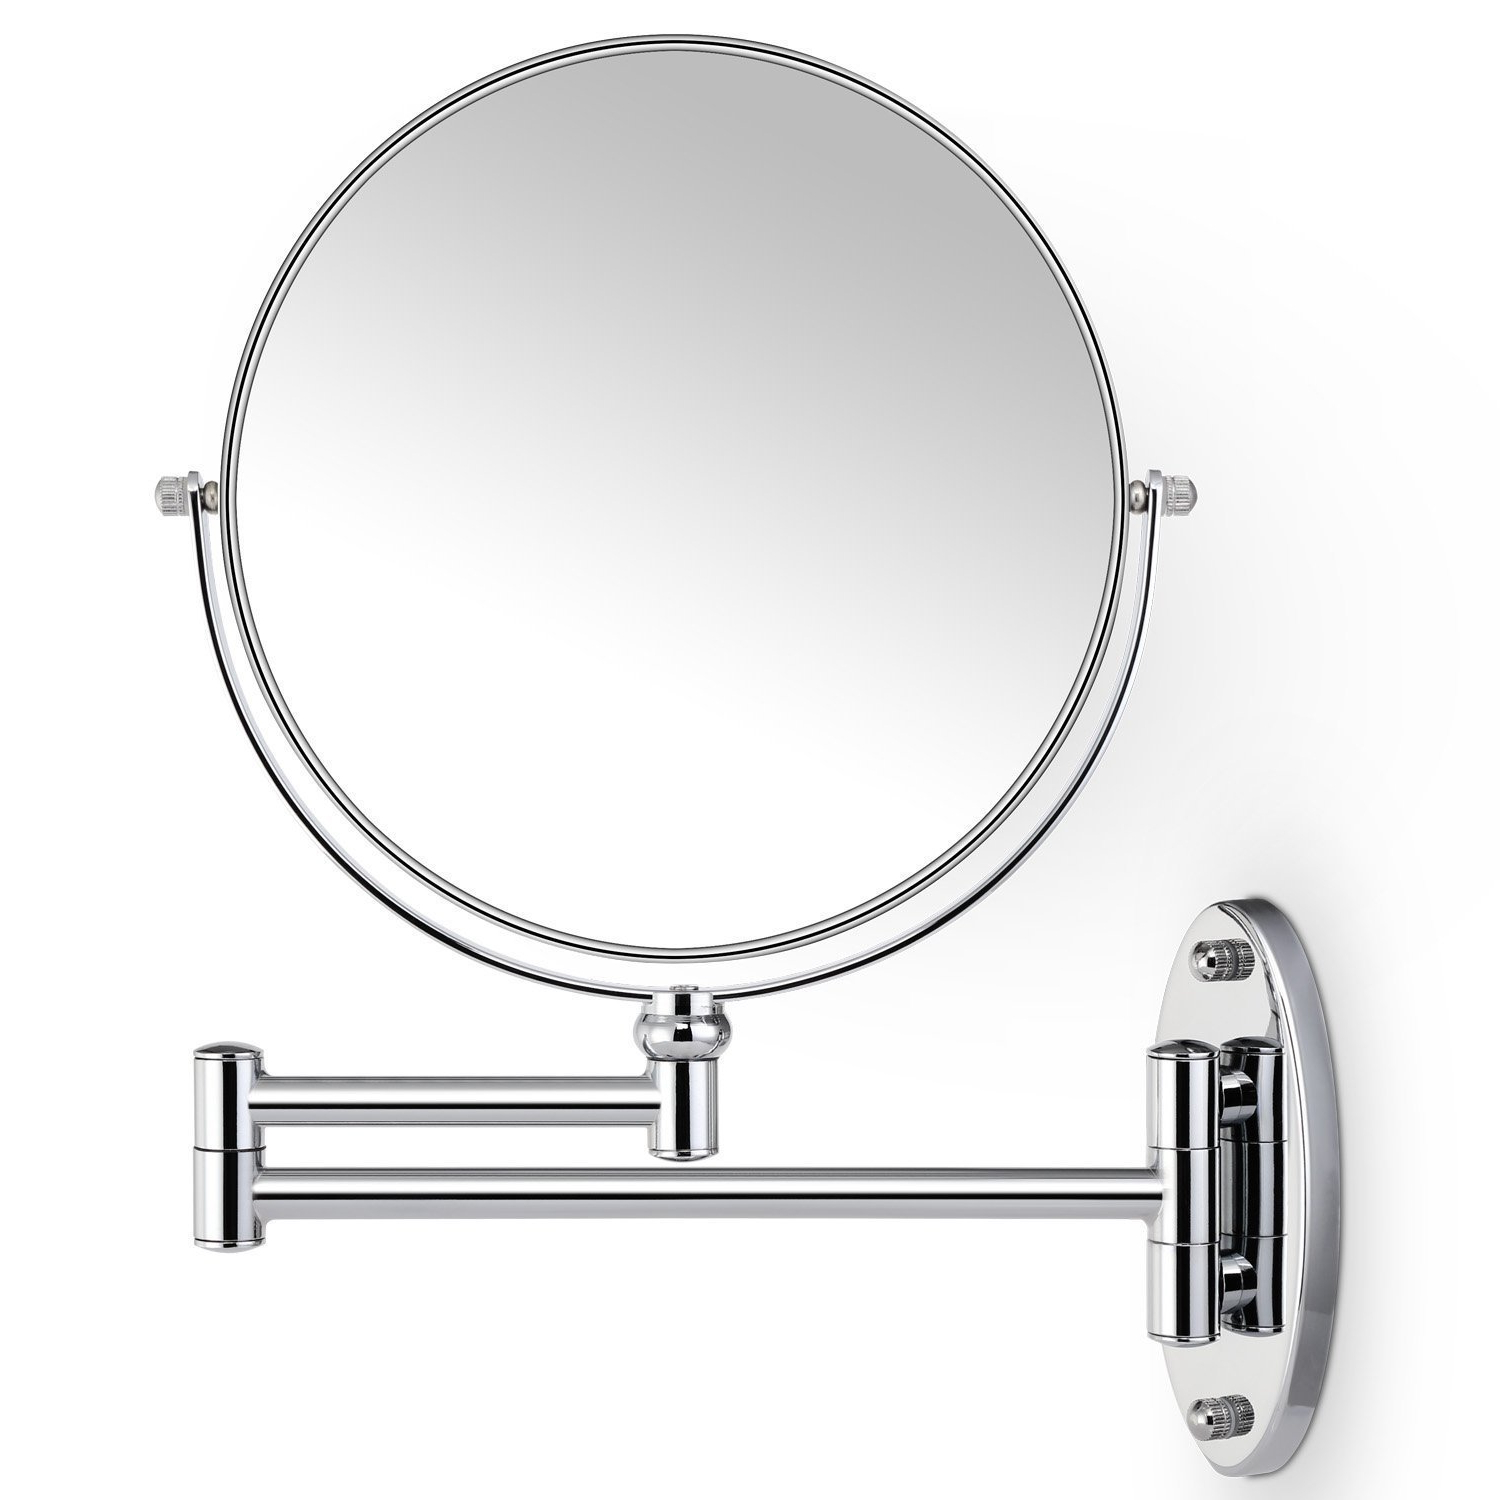 Cosprof Bathroom Mirror 10X/1X Magnification Double Sided 8 Inch Wall  Mounted Vanity Magnifying Mirror Pertaining To Widely Used Magnifying Wall Mirrors For Bathroom (Gallery 2 of 20)